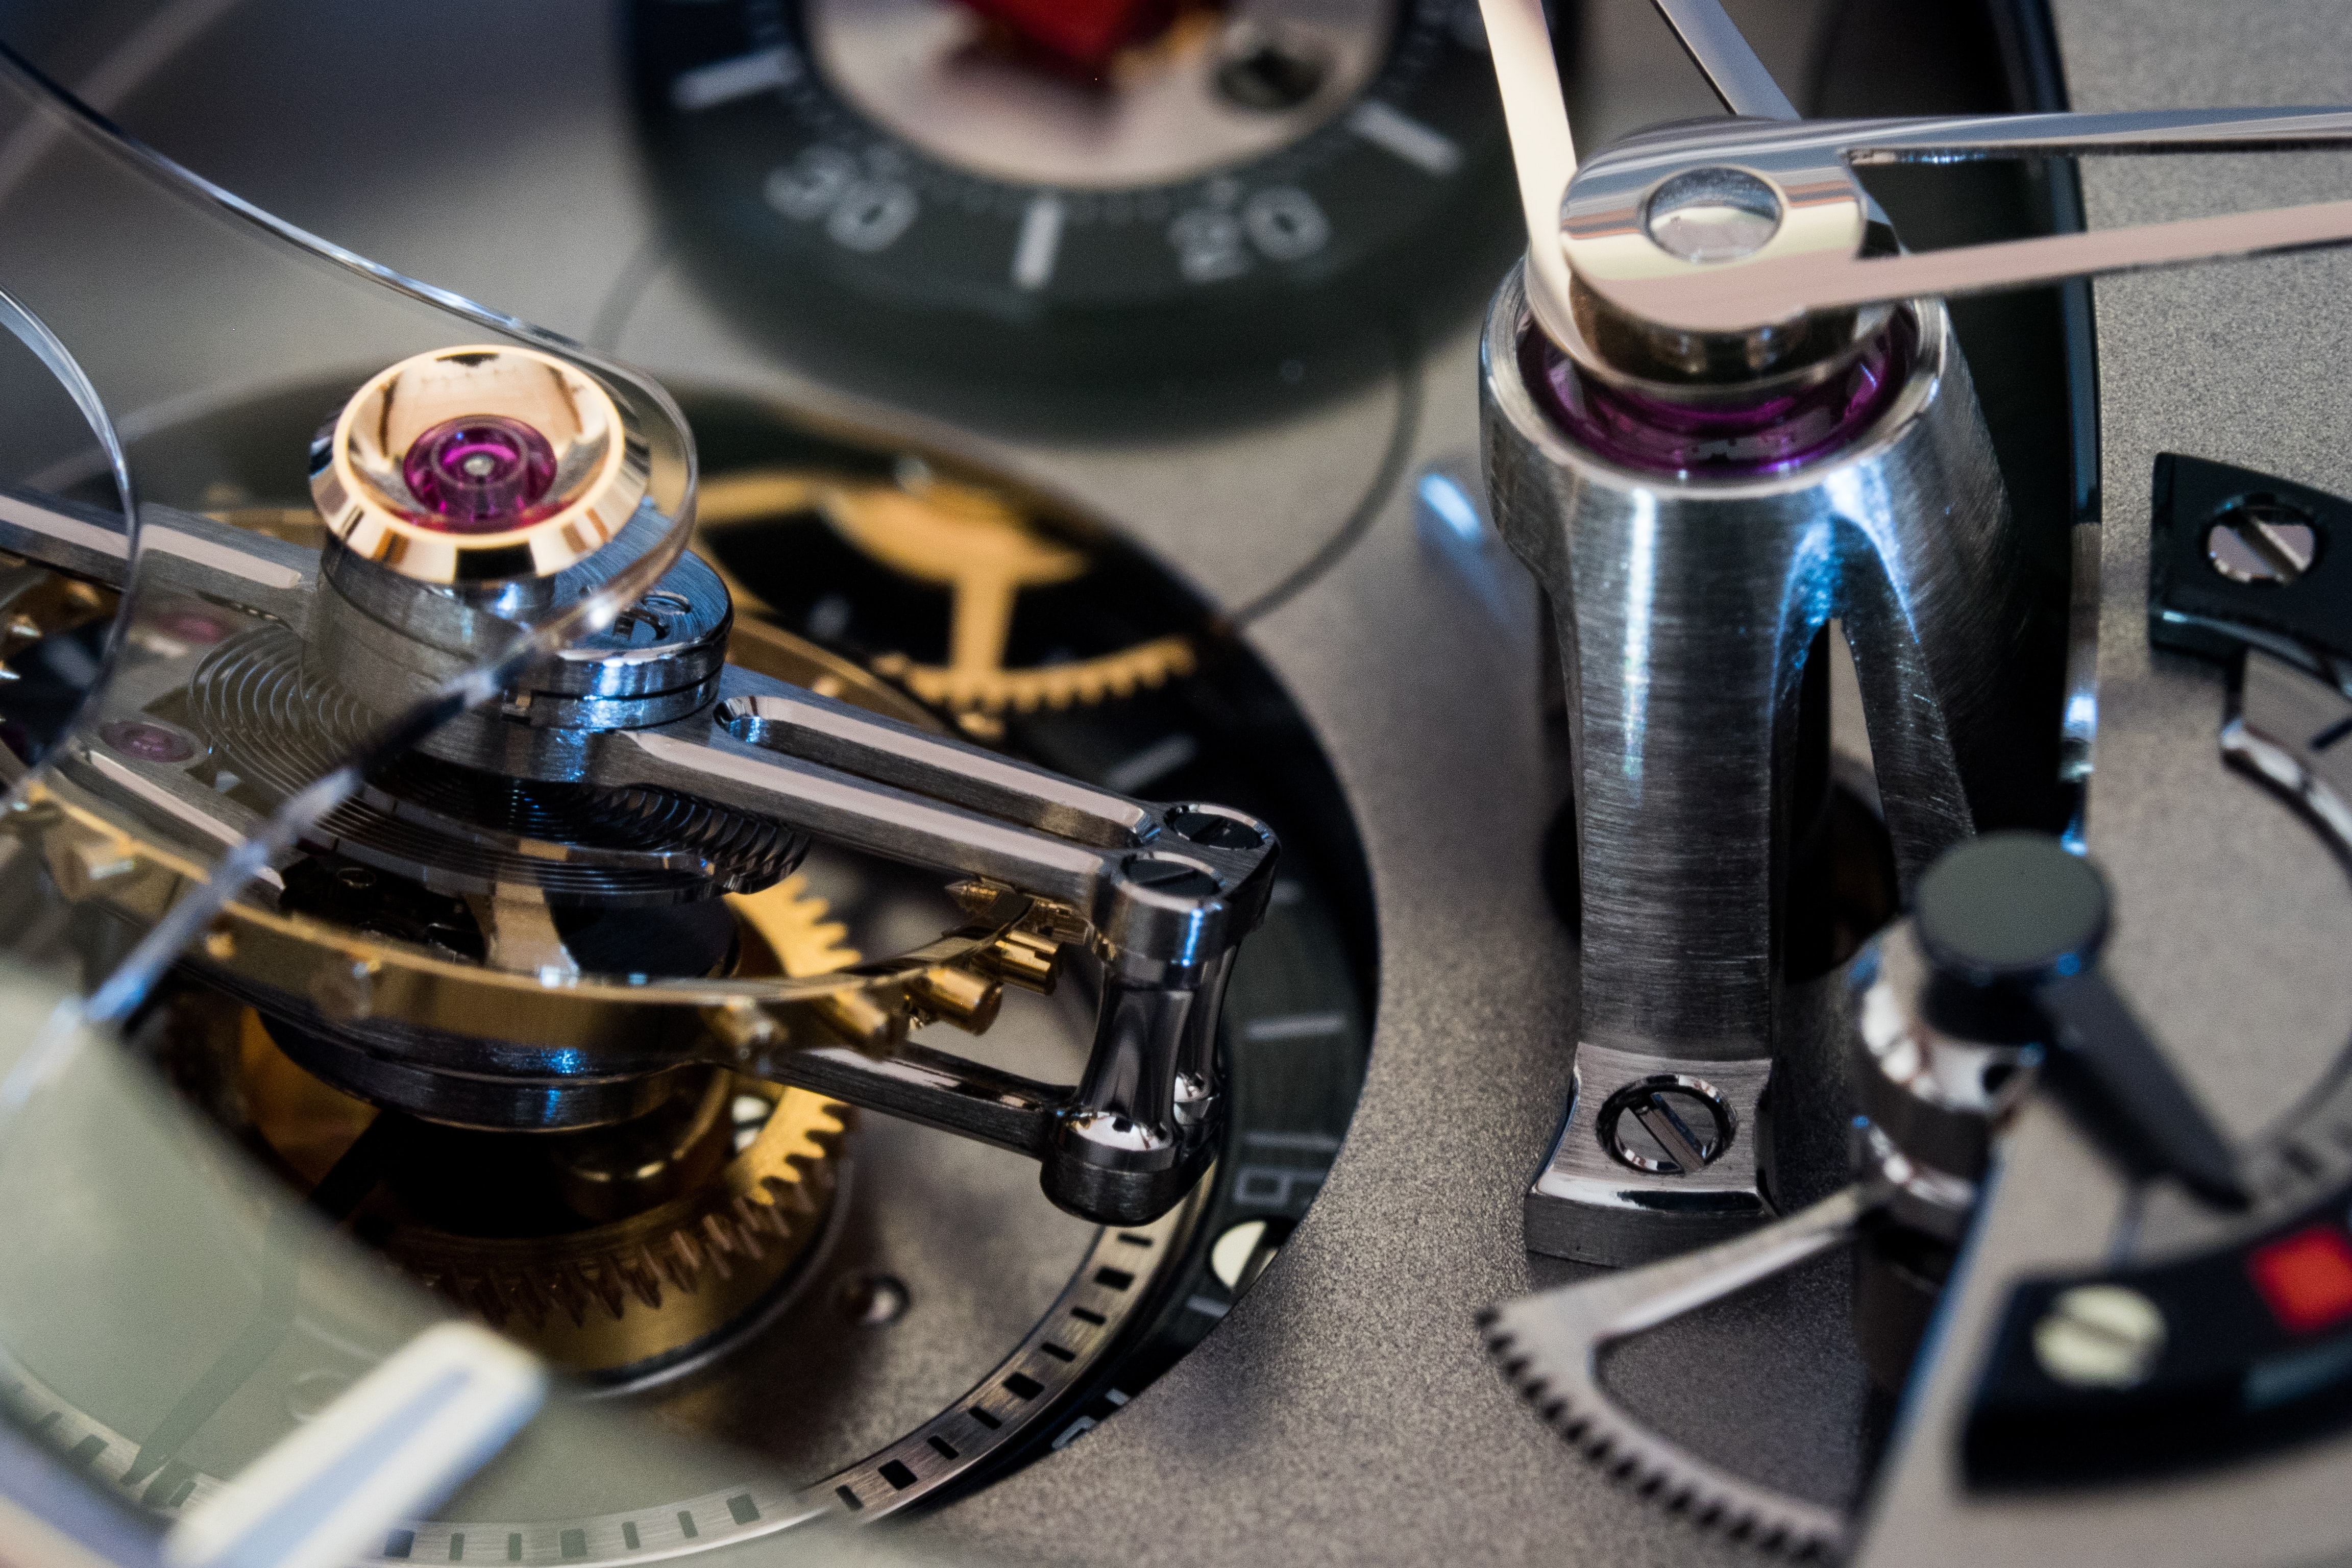 Greubel Forsey 24 Secondes Contemporain pillar for hands and tourbillon cage In-Depth: The Greubel Forsey 24 Secondes Contemporain In White Gold (And The Case For A Tourbillon In A Wristwatch) In-Depth: The Greubel Forsey 24 Secondes Contemporain In White Gold (And The Case For A Tourbillon In A Wristwatch) PC191058